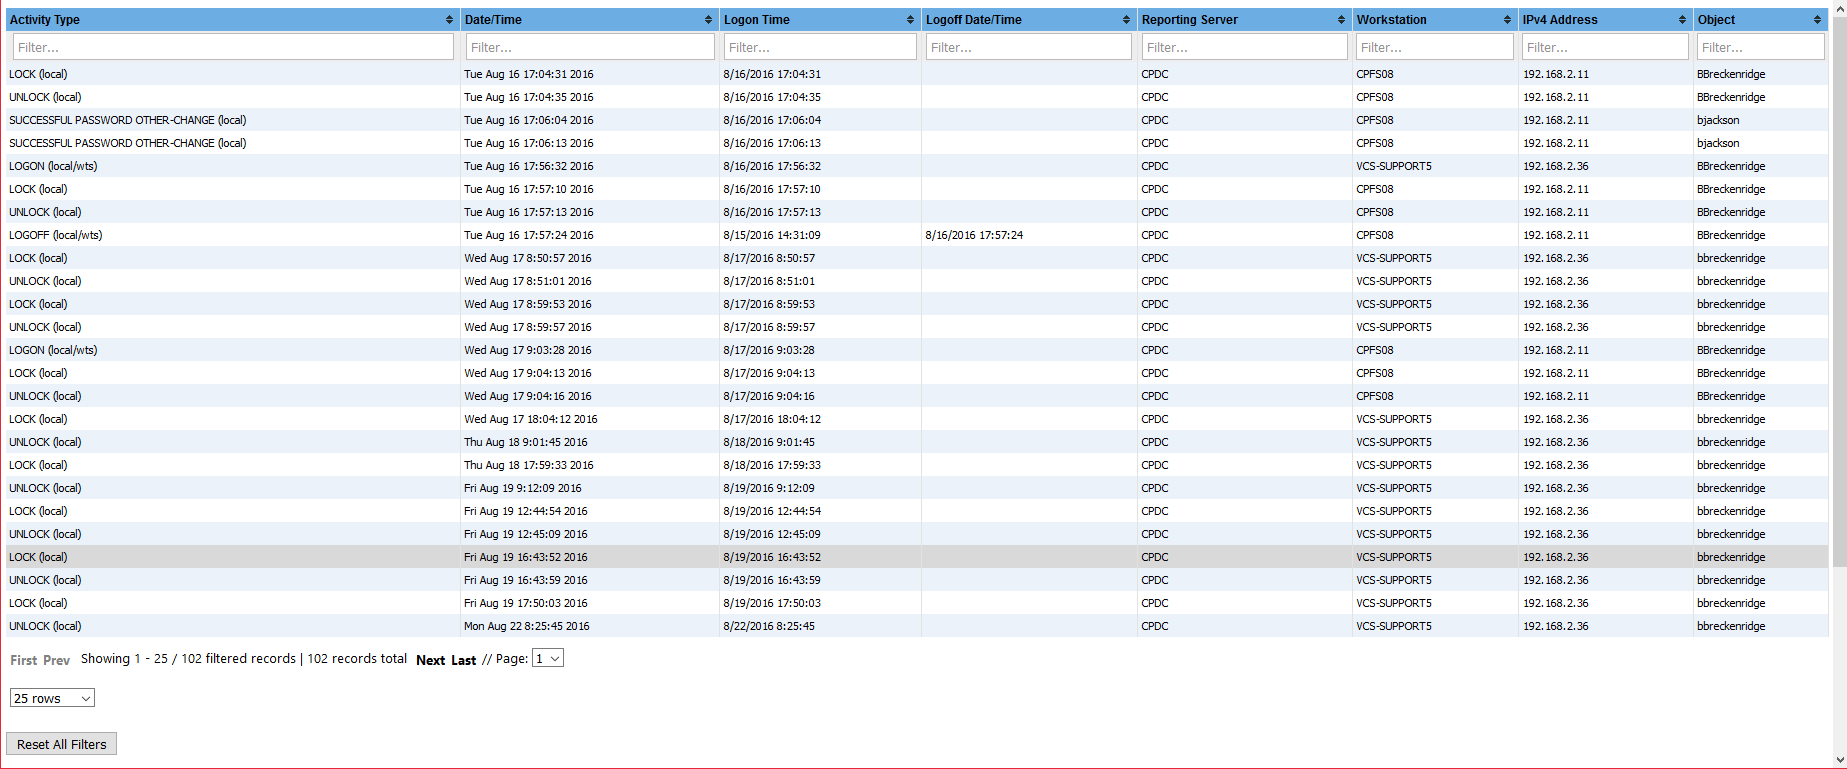 Tracking workstation logons and server authentications